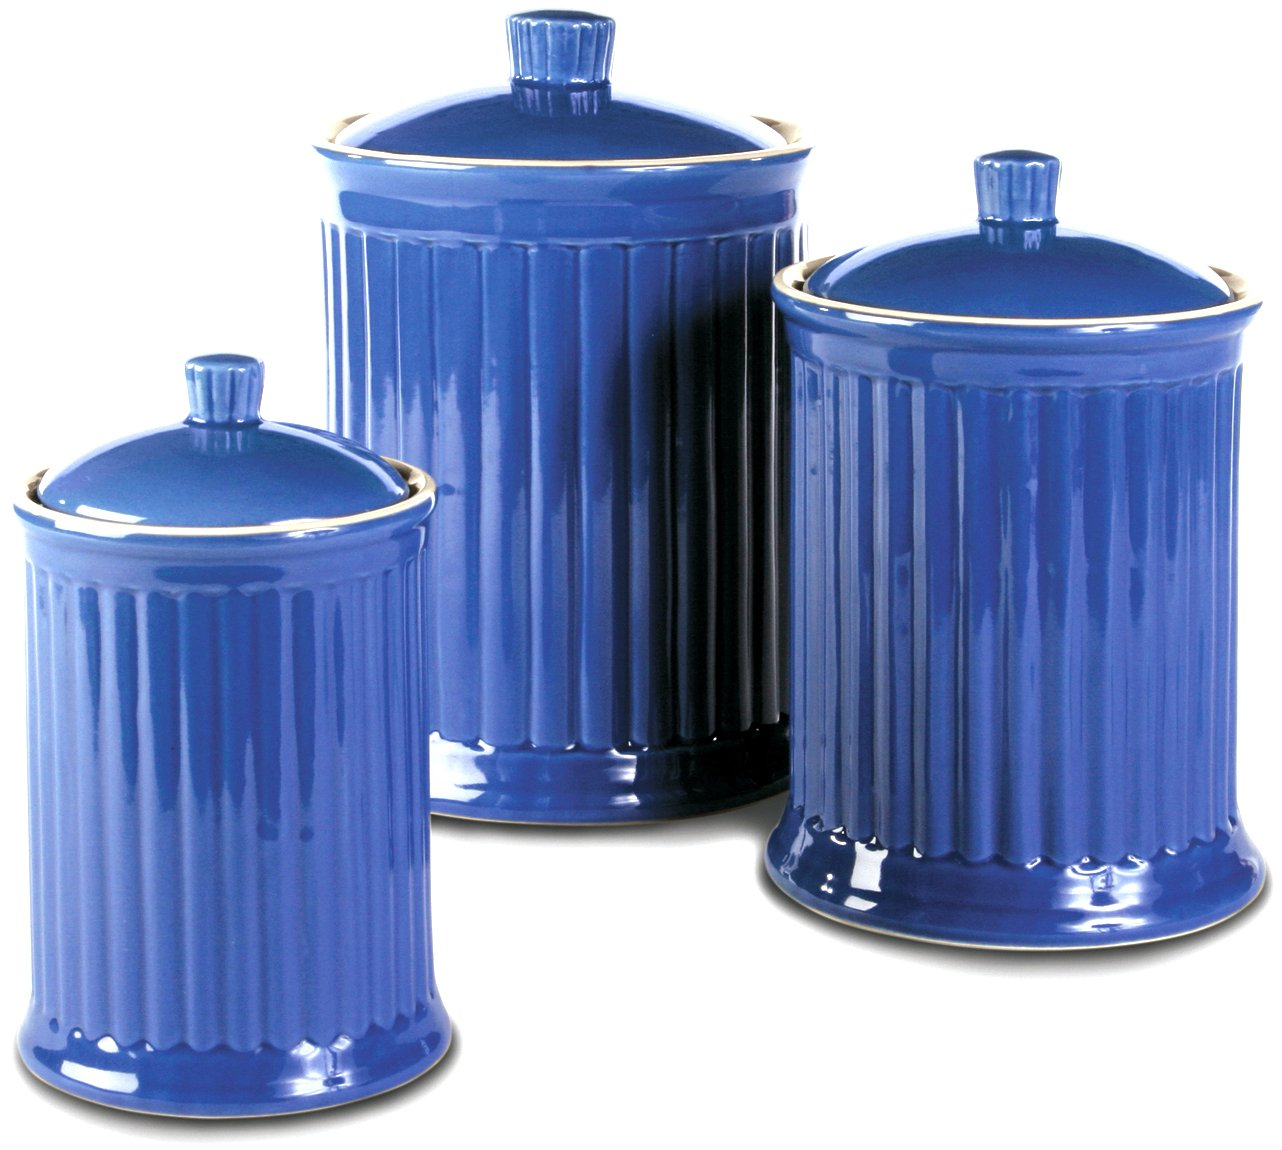 amazon com omni simsbury canisters set of 3 home kitchen